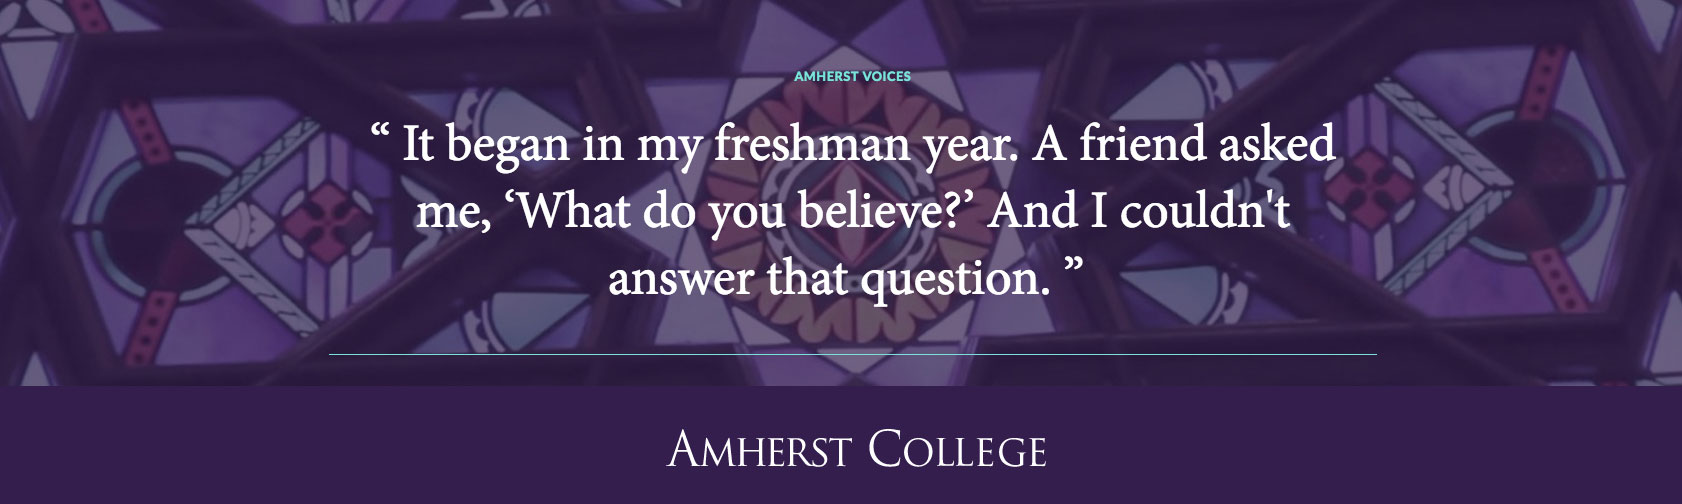 "It began in my freshman year. ""A friend asked me, 'What do you believe?' And I couldn't answer that question.""  Peter Rubinstein"